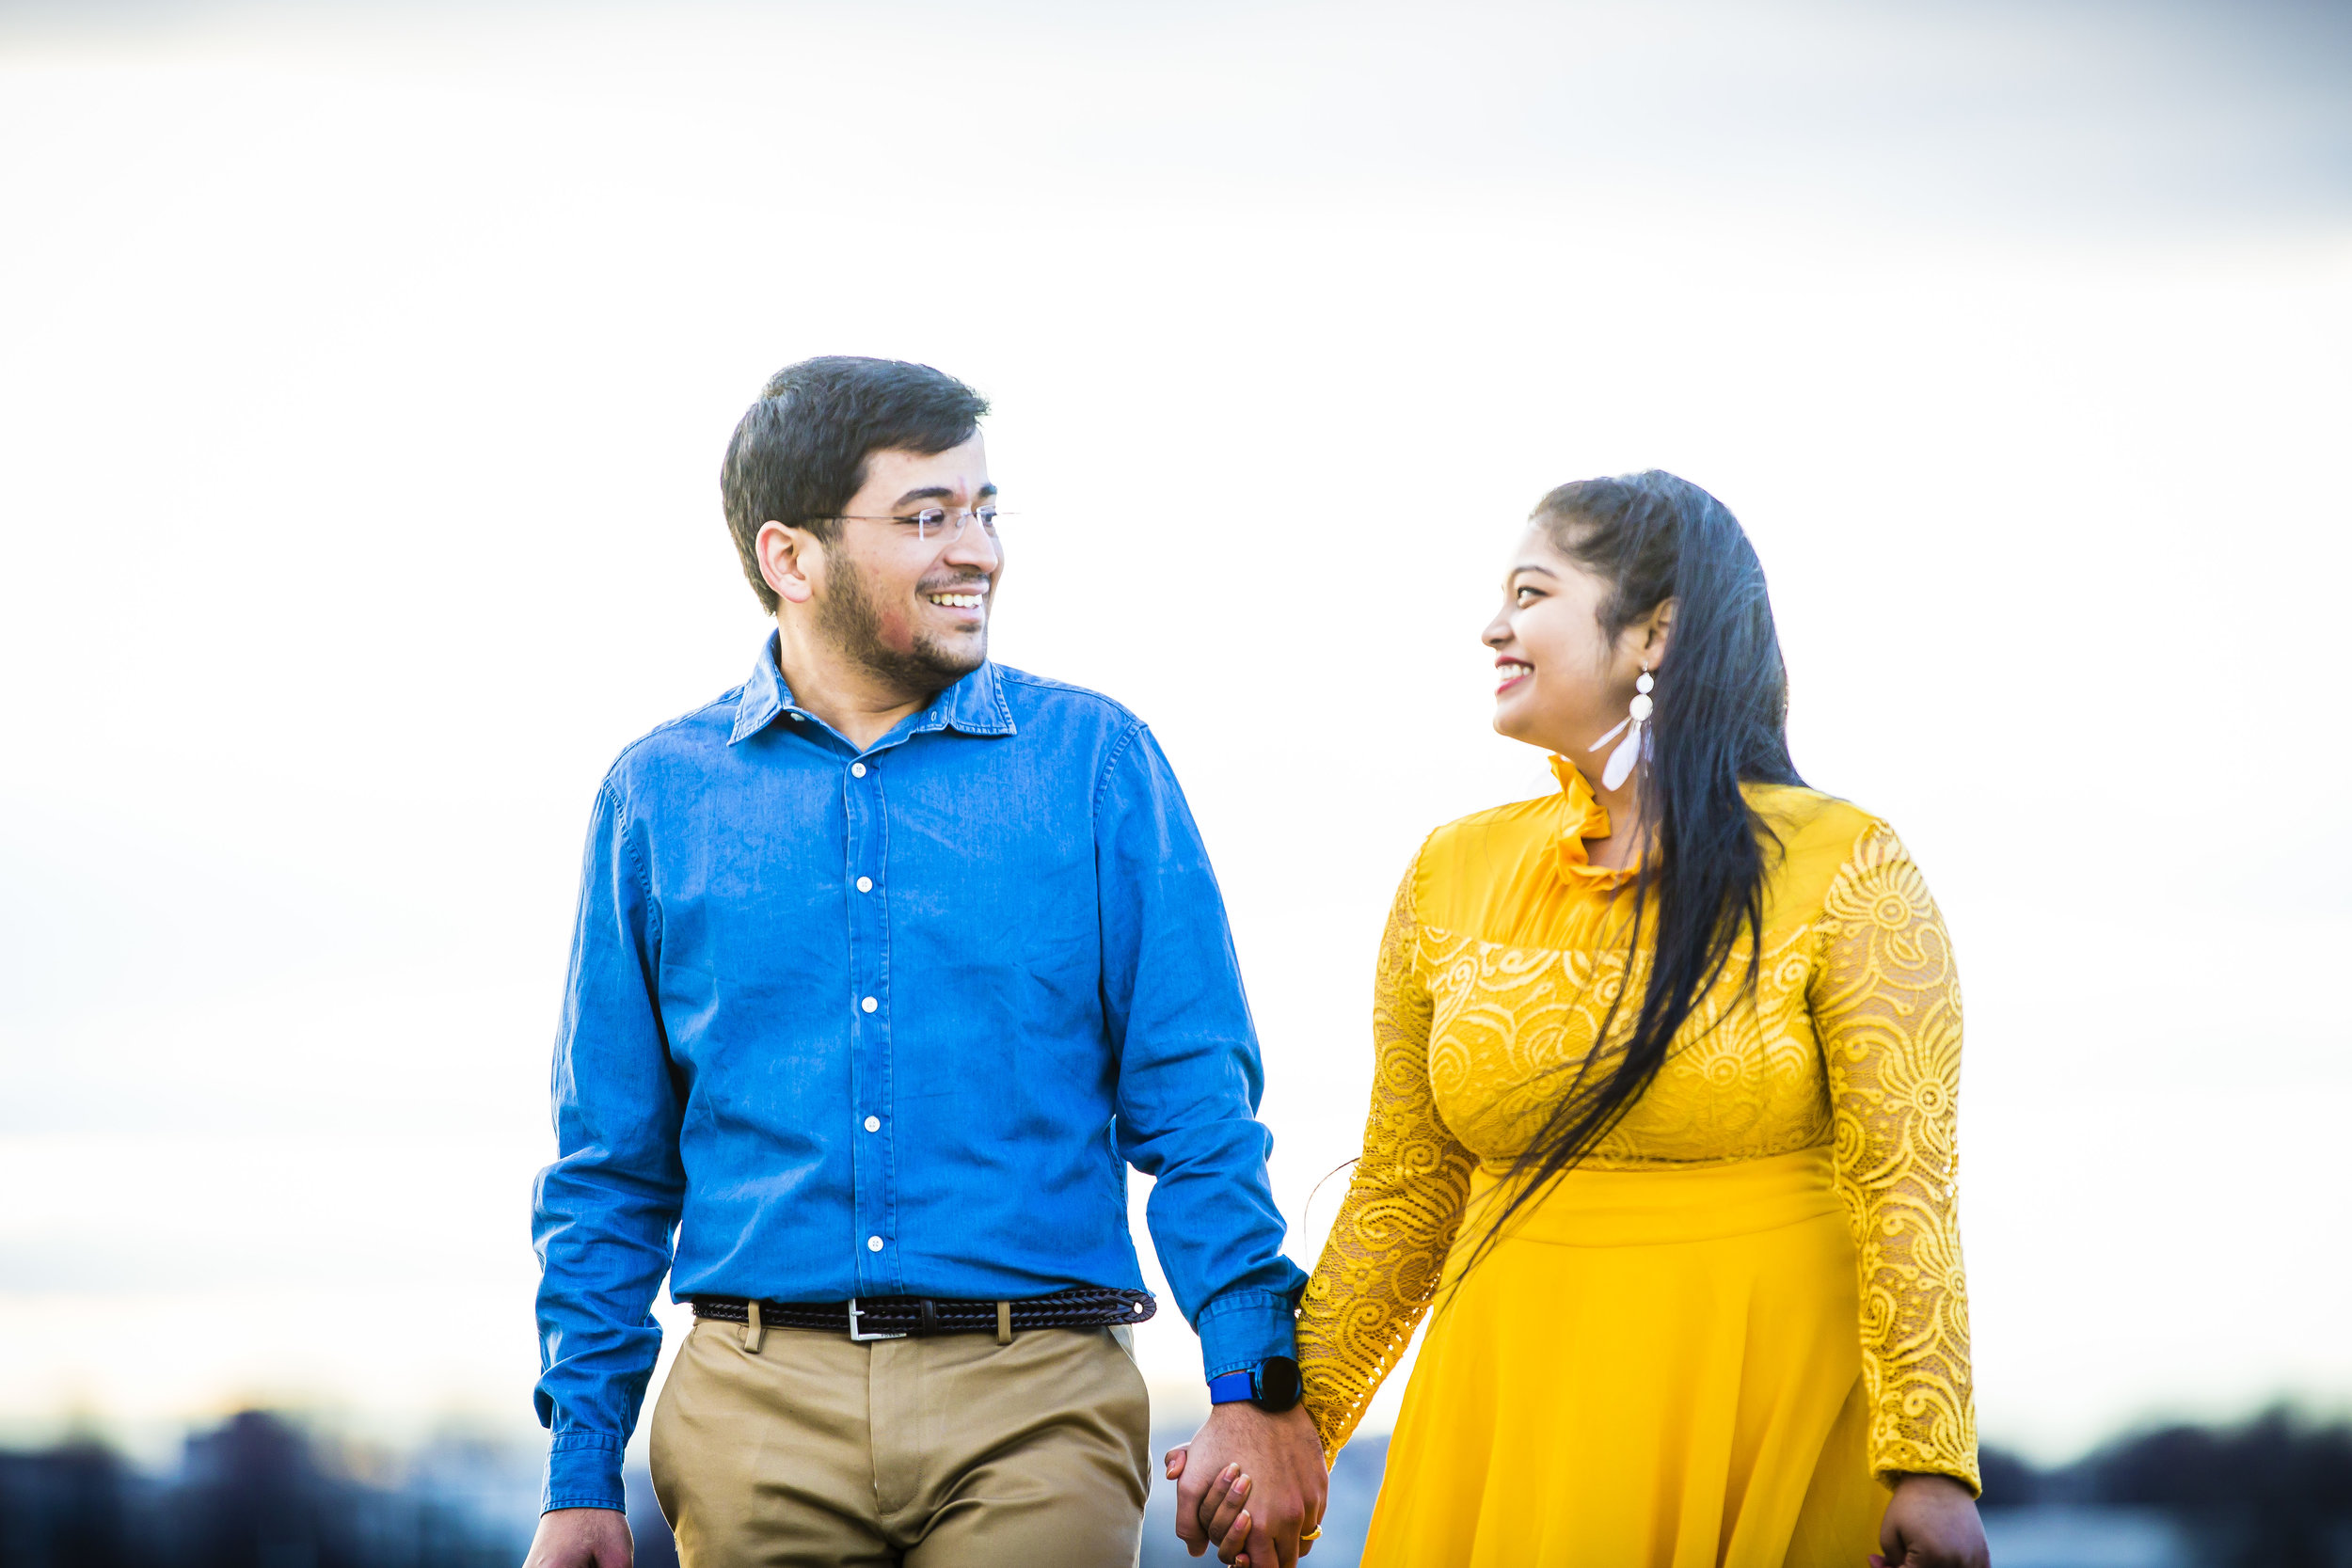 8C2A6706 Giovanni The Photographer Boston Engagment Photography Waterfront - Christopher Columbus Park - Public GardenPhotography School.jpg